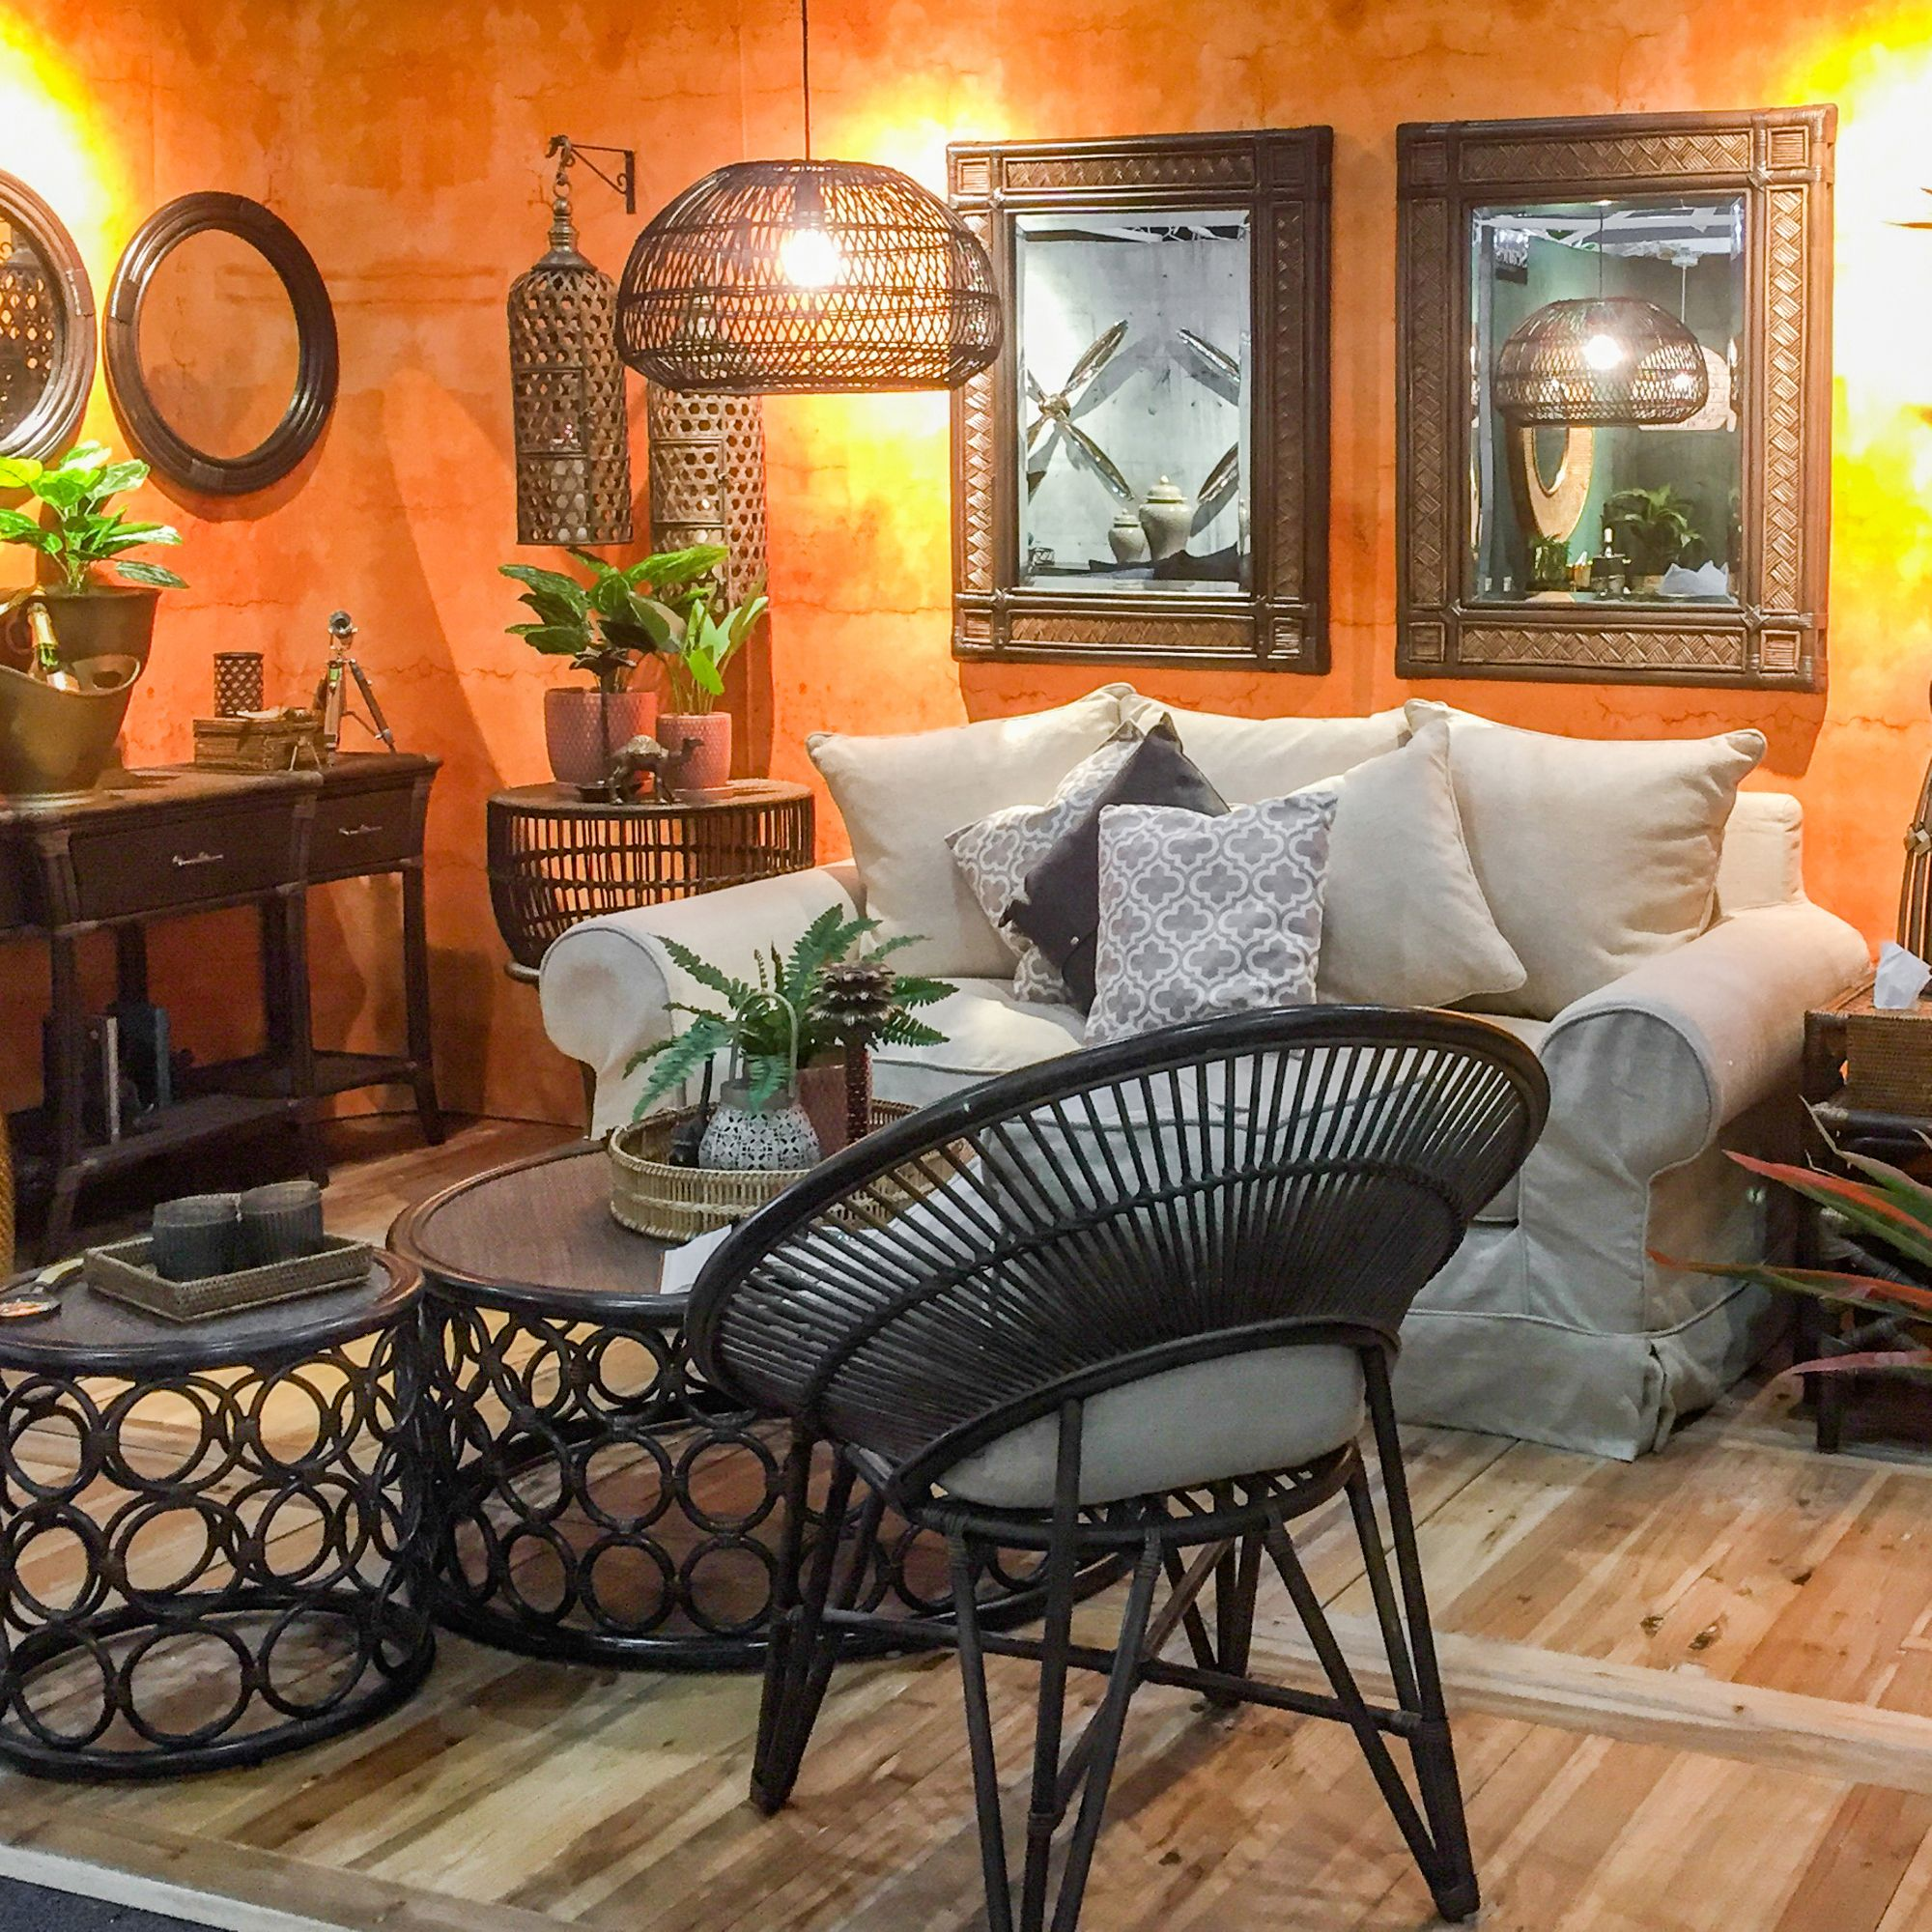 Moroccan inspired home decor and furniture. Get the